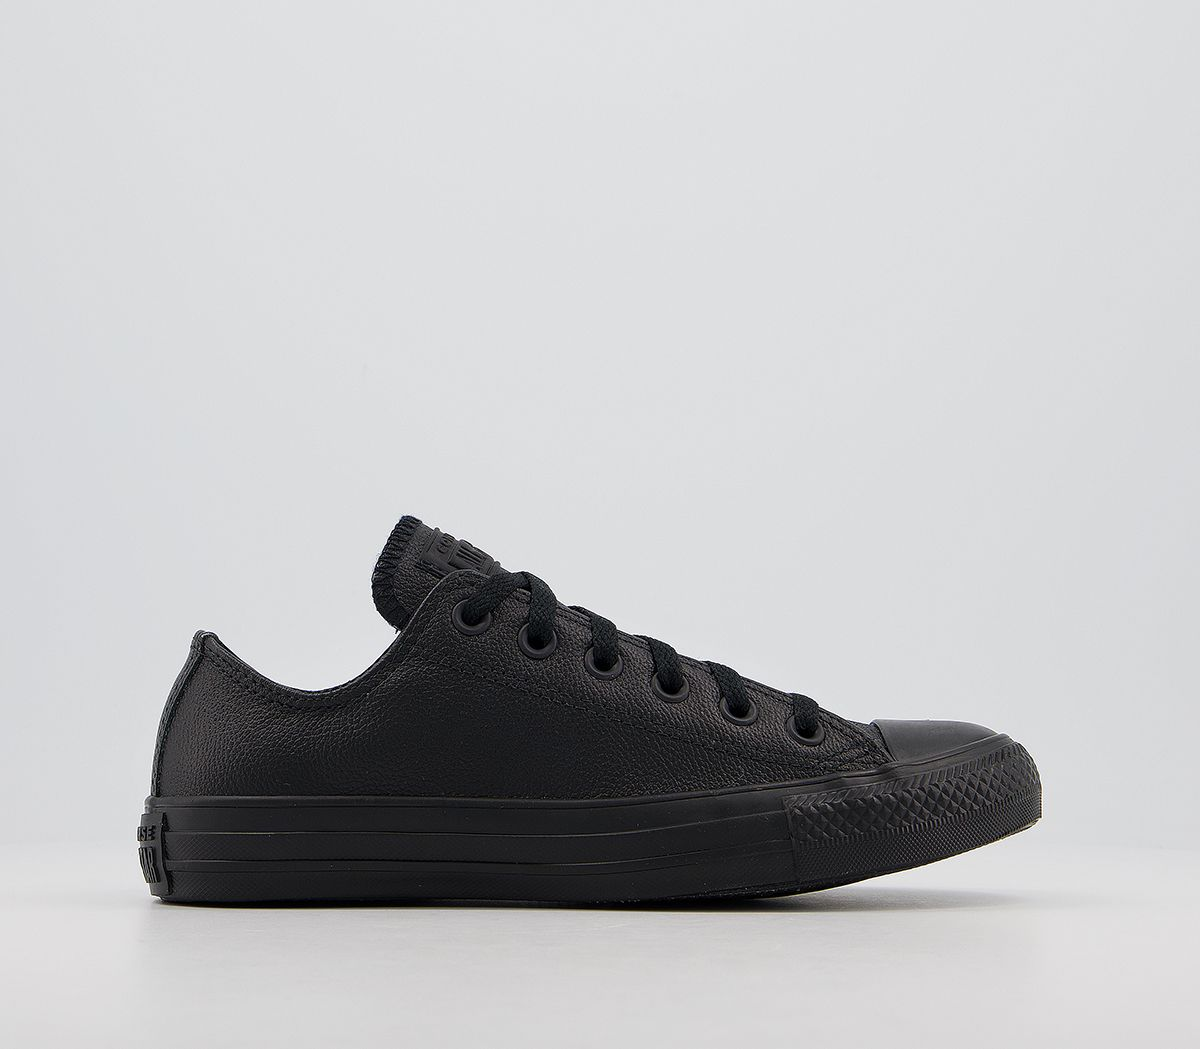 ea02df7f4d98 Converse All Star Low Leather Black Mono Leather - Unisex Sports